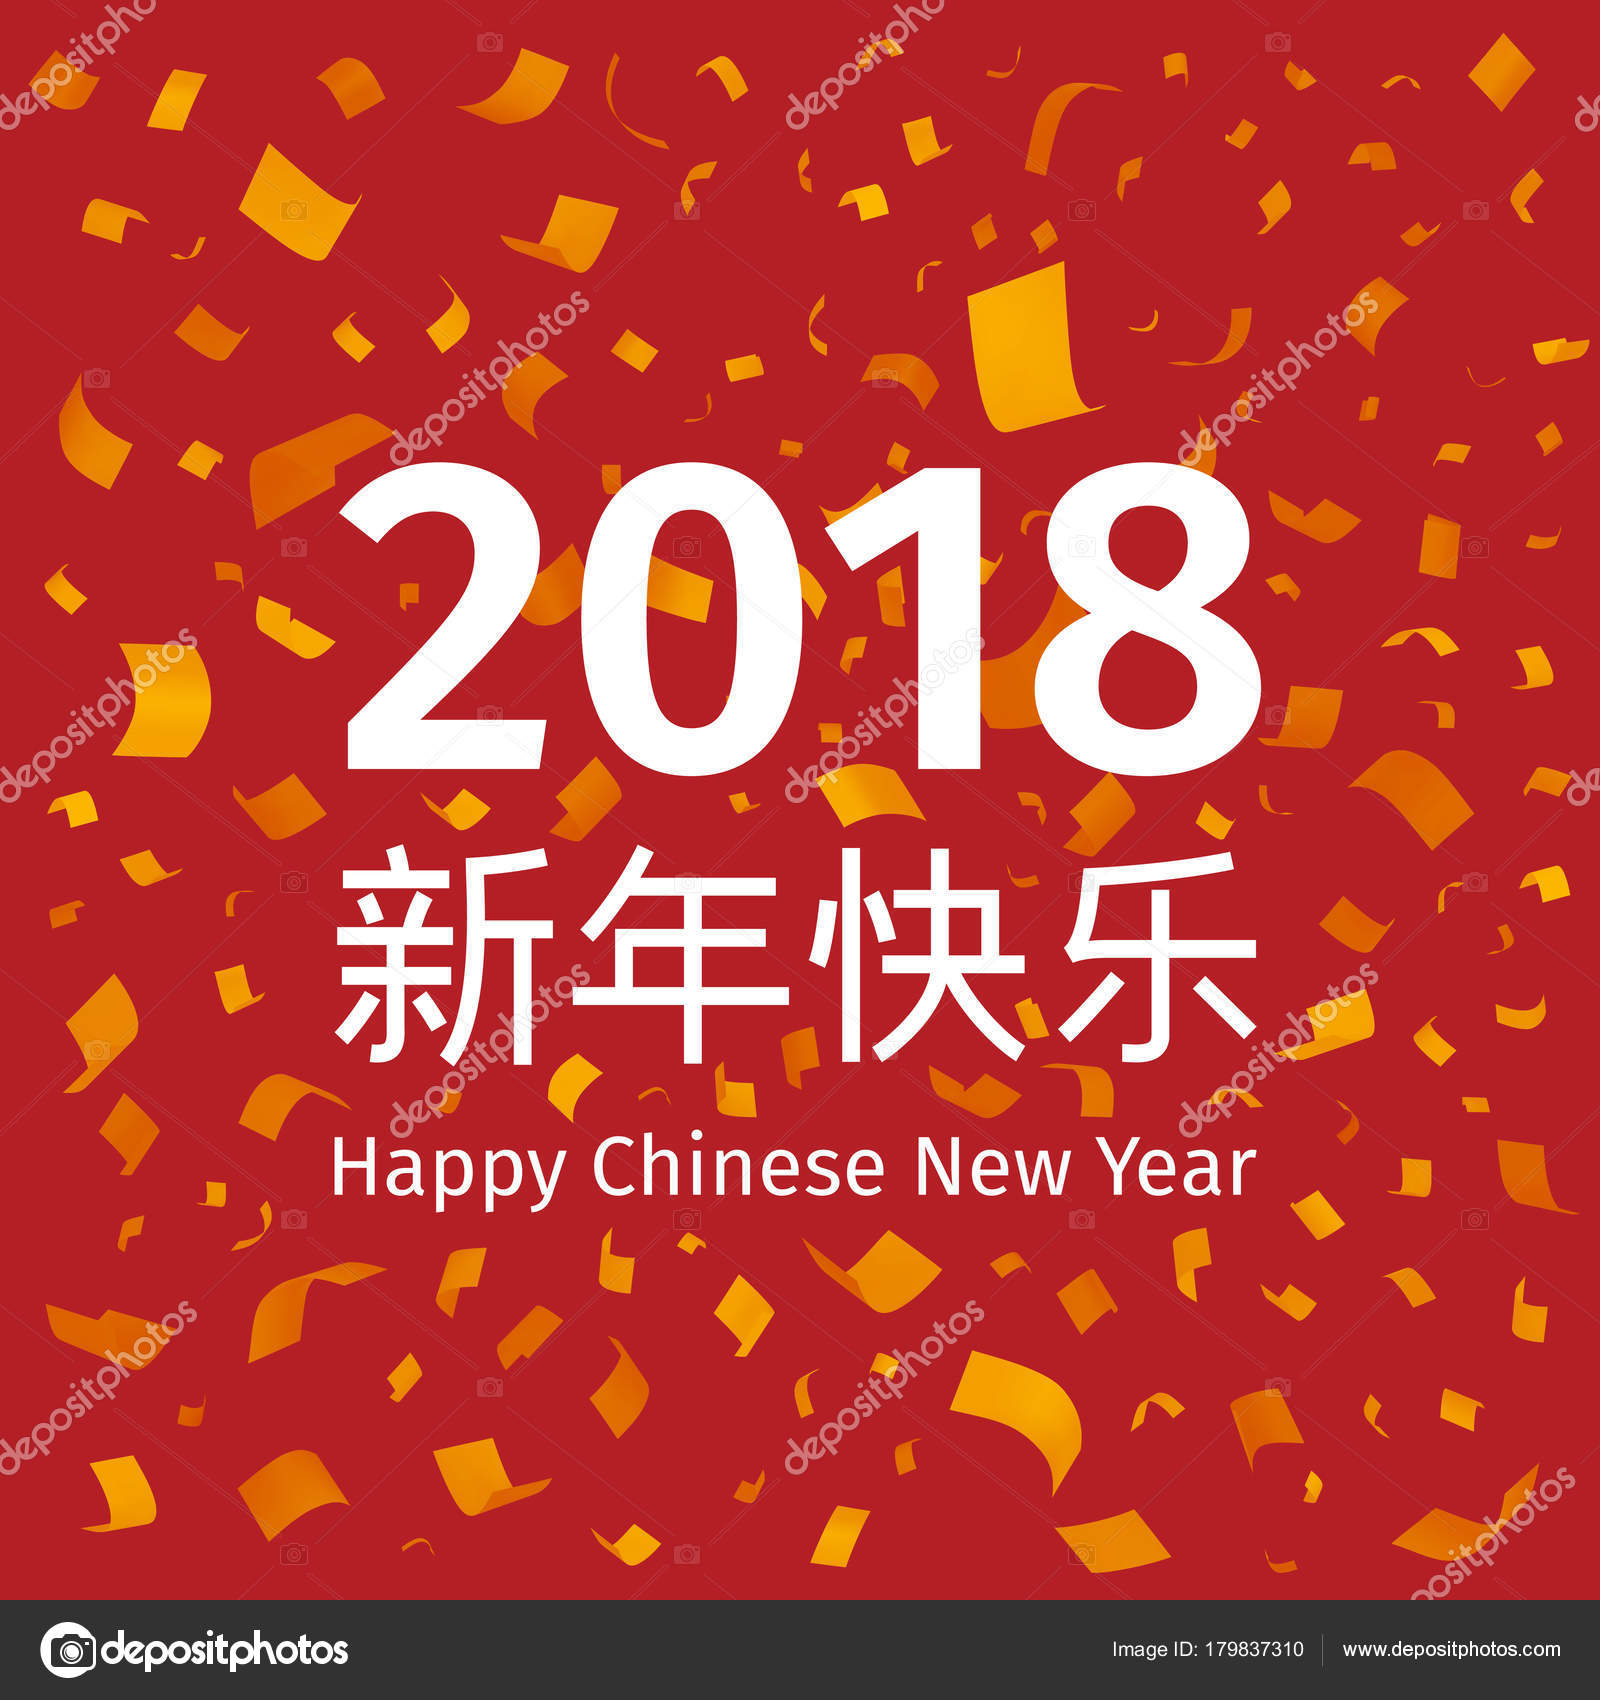 happy chinese new year 2018 background stock vector